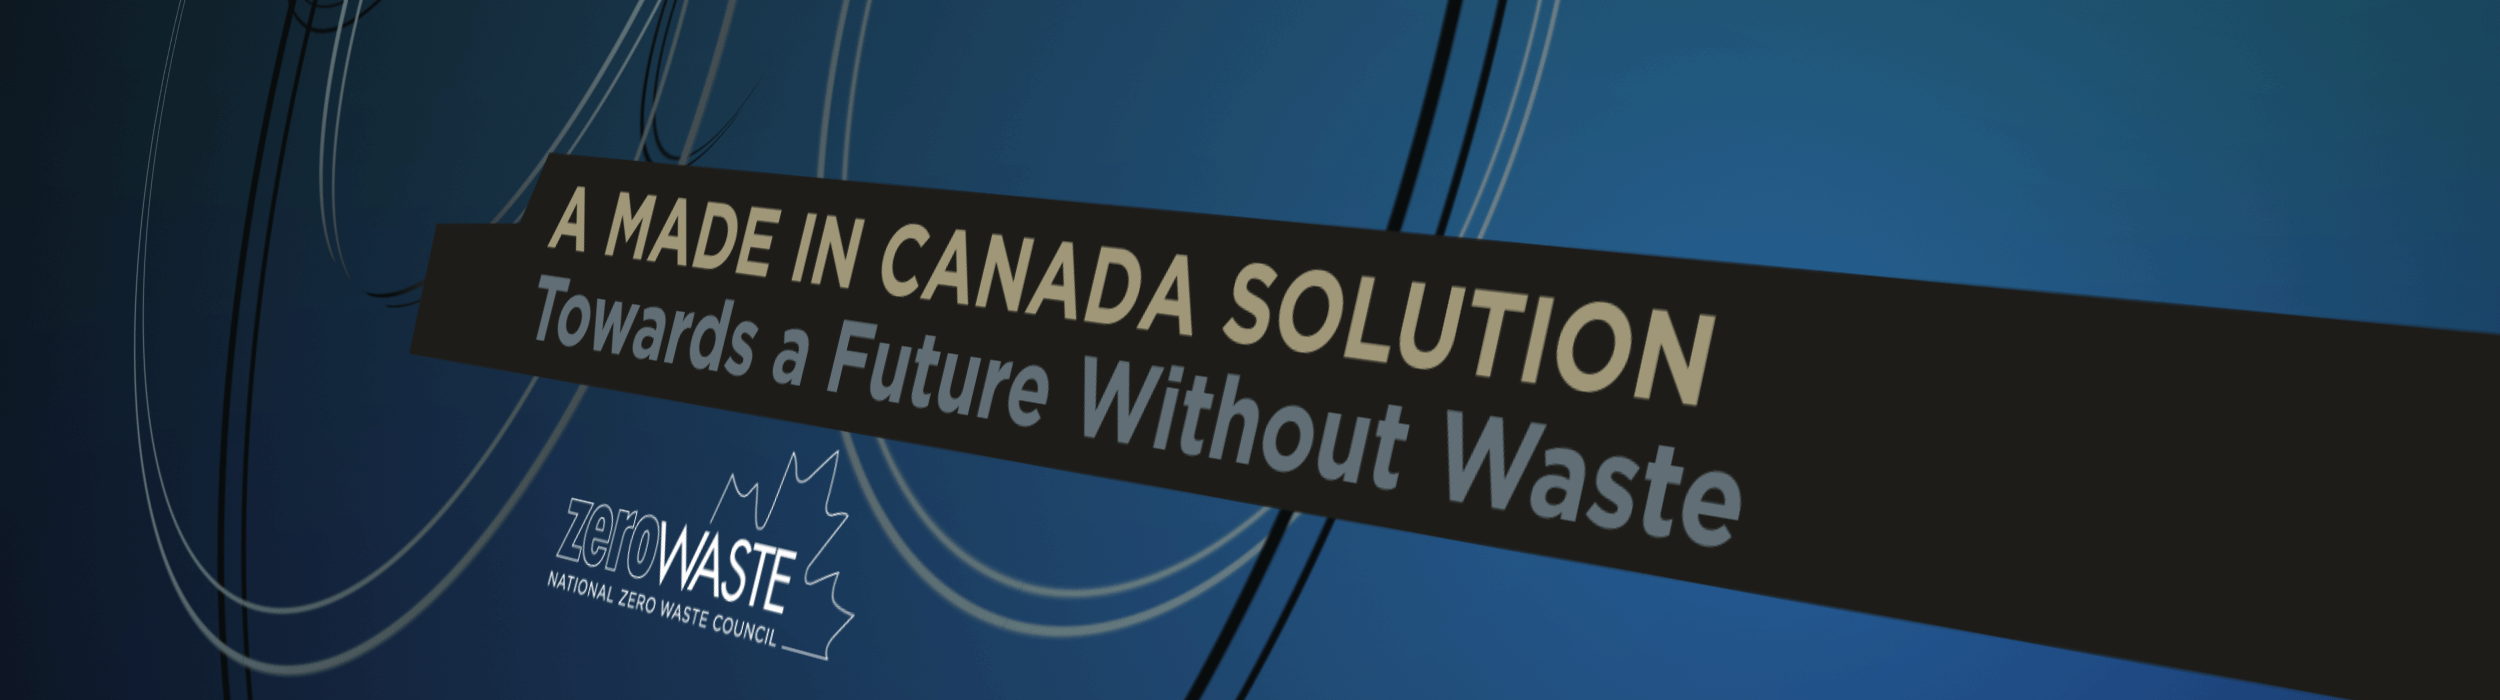 A Made in Canada Solution